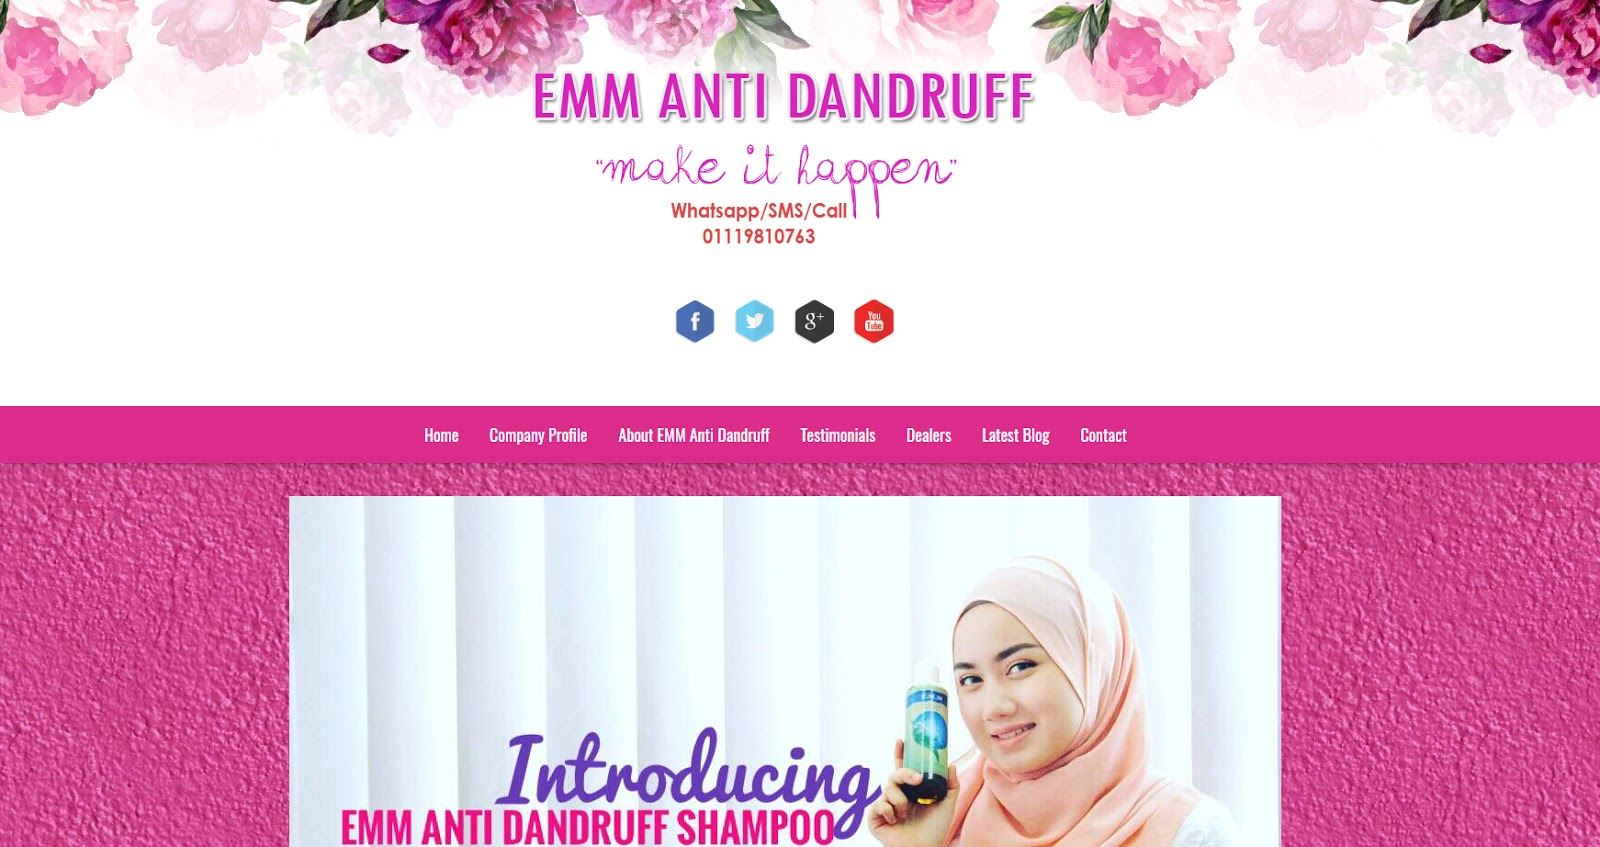 EMM Anti Dandruff Business Blog